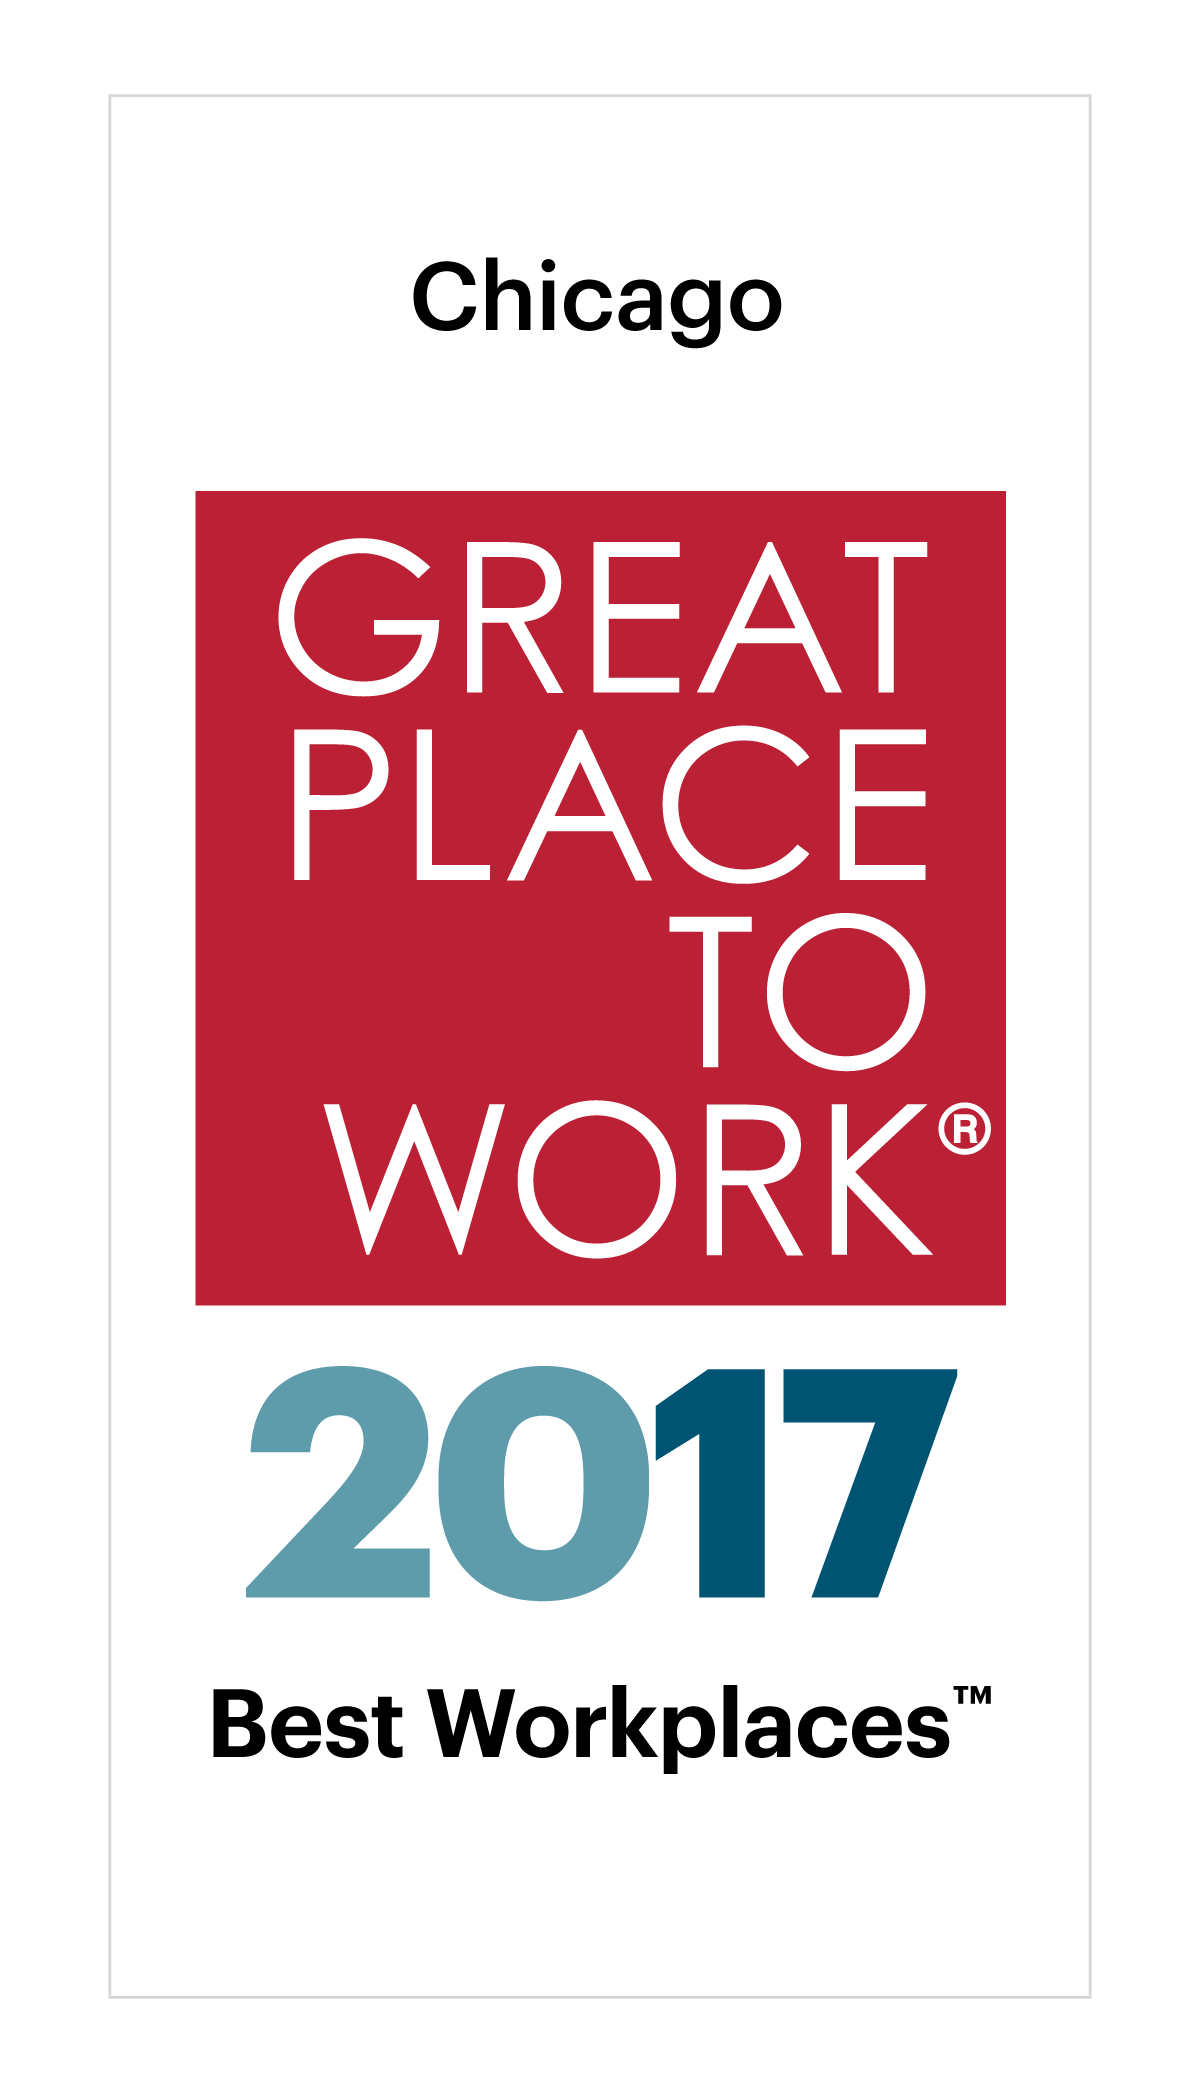 Best Large Workplaces in Chicago Image